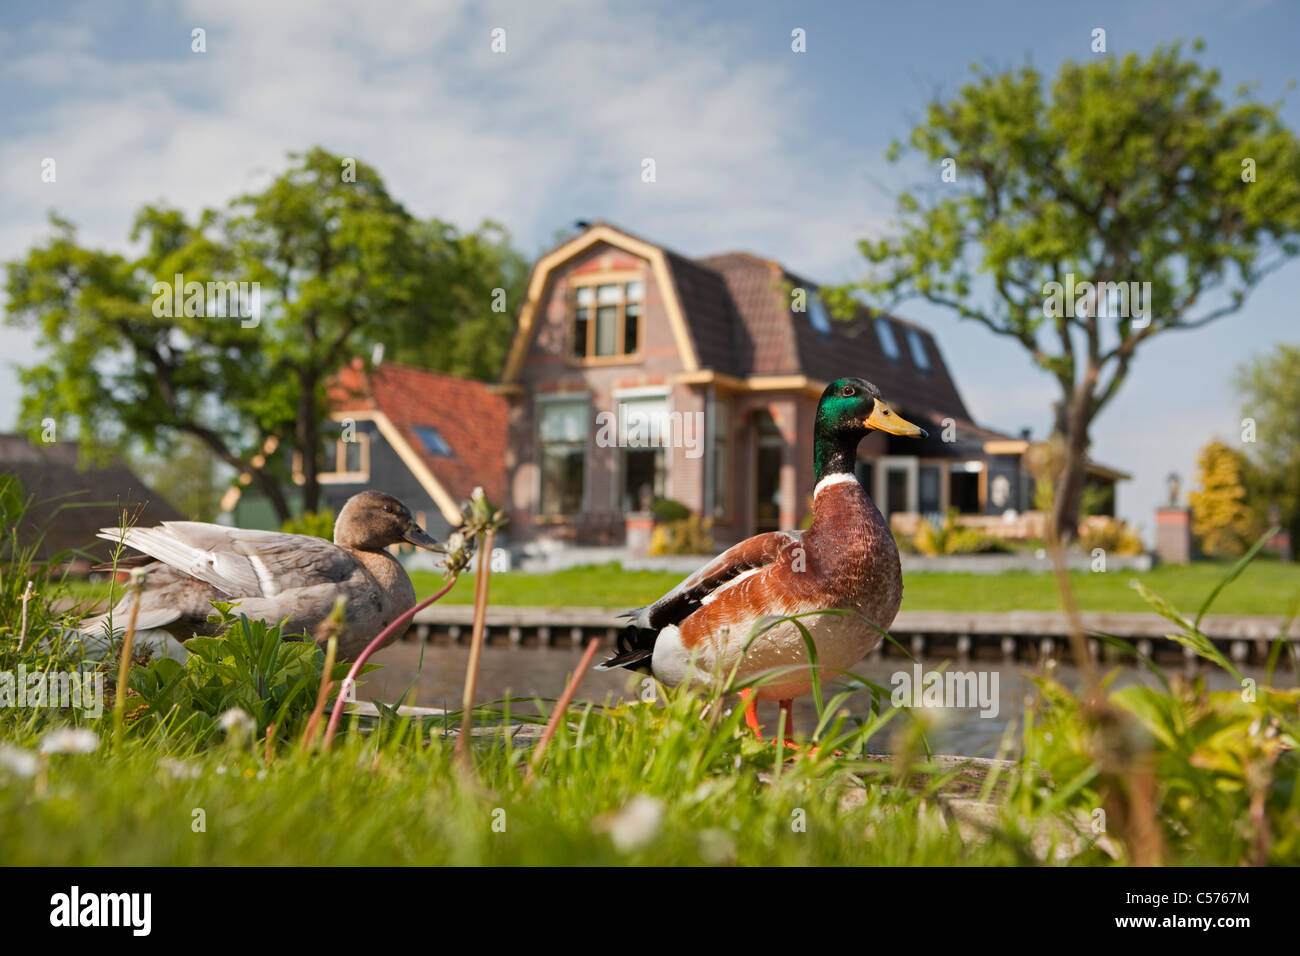 The Netherlands, Giethoorn, Village with almost only waterways. Ducks. - Stock Image